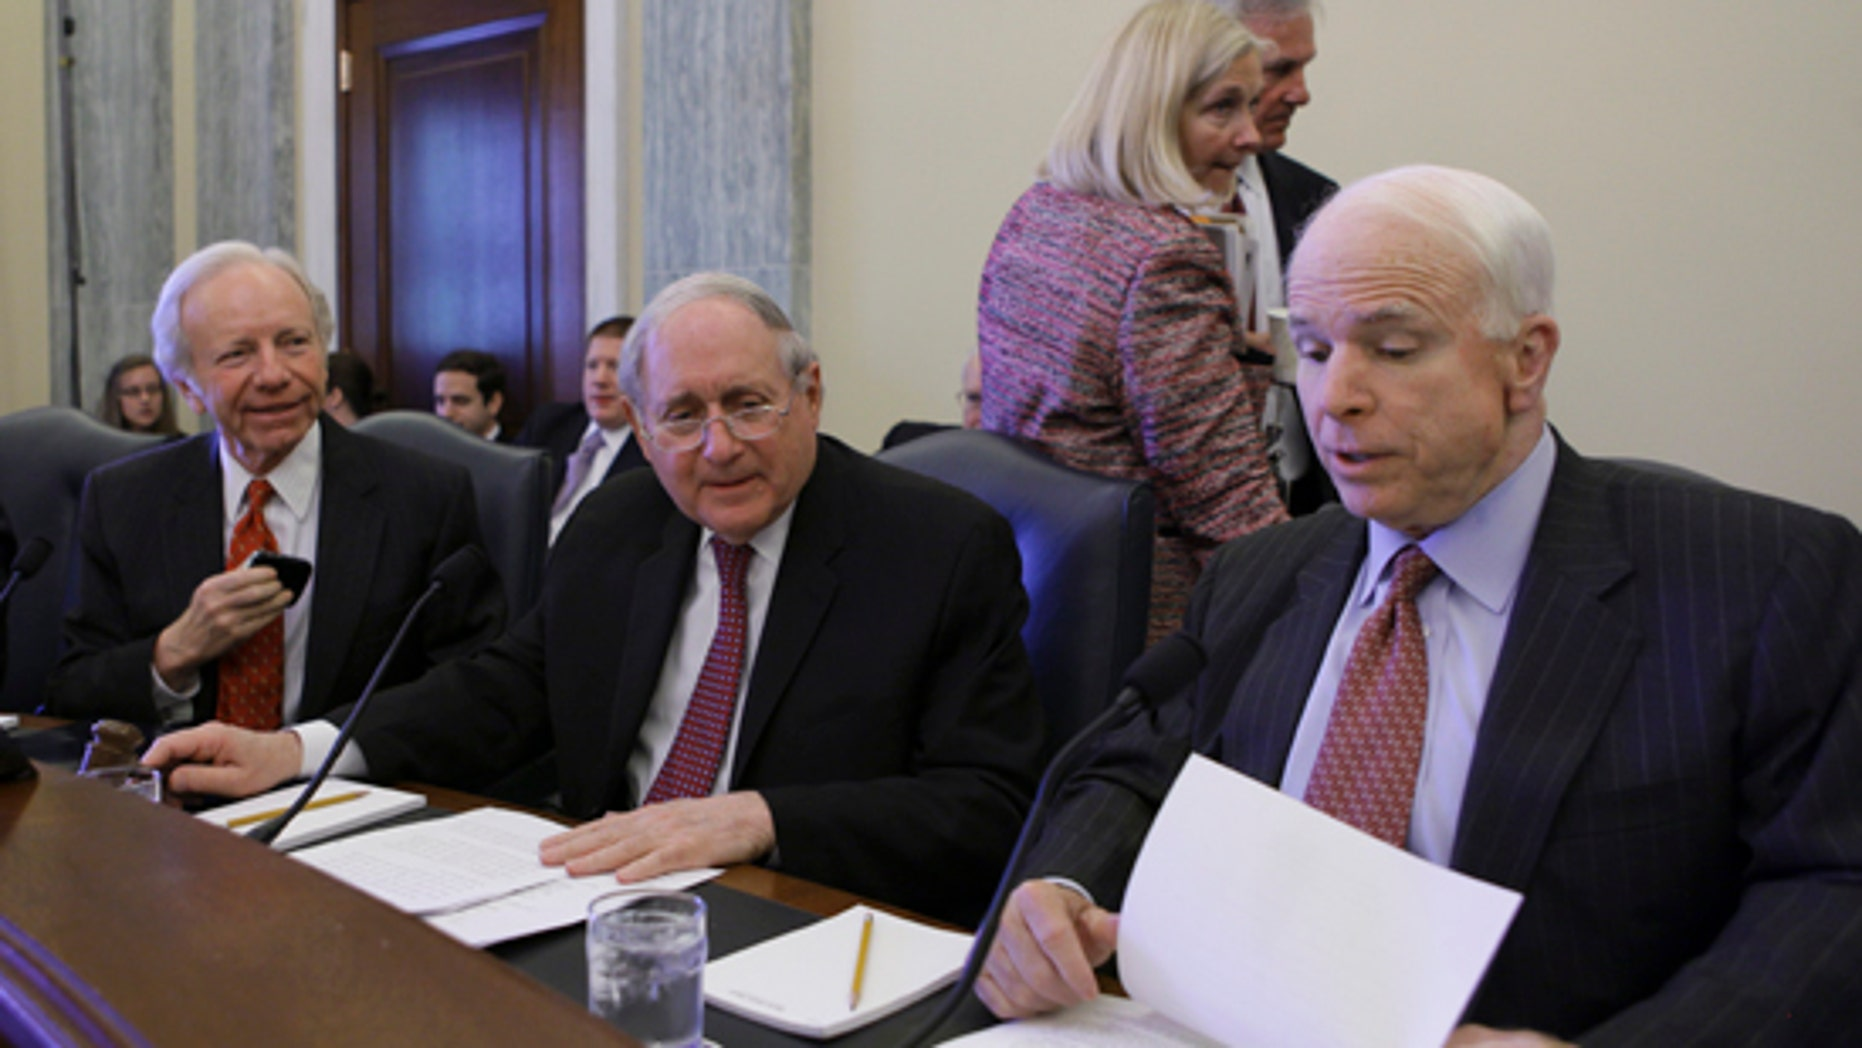 Senate Armed Services Committee Sen. Carl Levin, D-Mich., center, flanked by the committee's ranking Republican Sen. John McCain, R-Ariz., right, and Sen. Joseph Lieberman, I-Conn., prepares to open the committee's hearing on U.S. policy toward Iran's nuclear program, Wednesday, April 14, 2010. (AP)